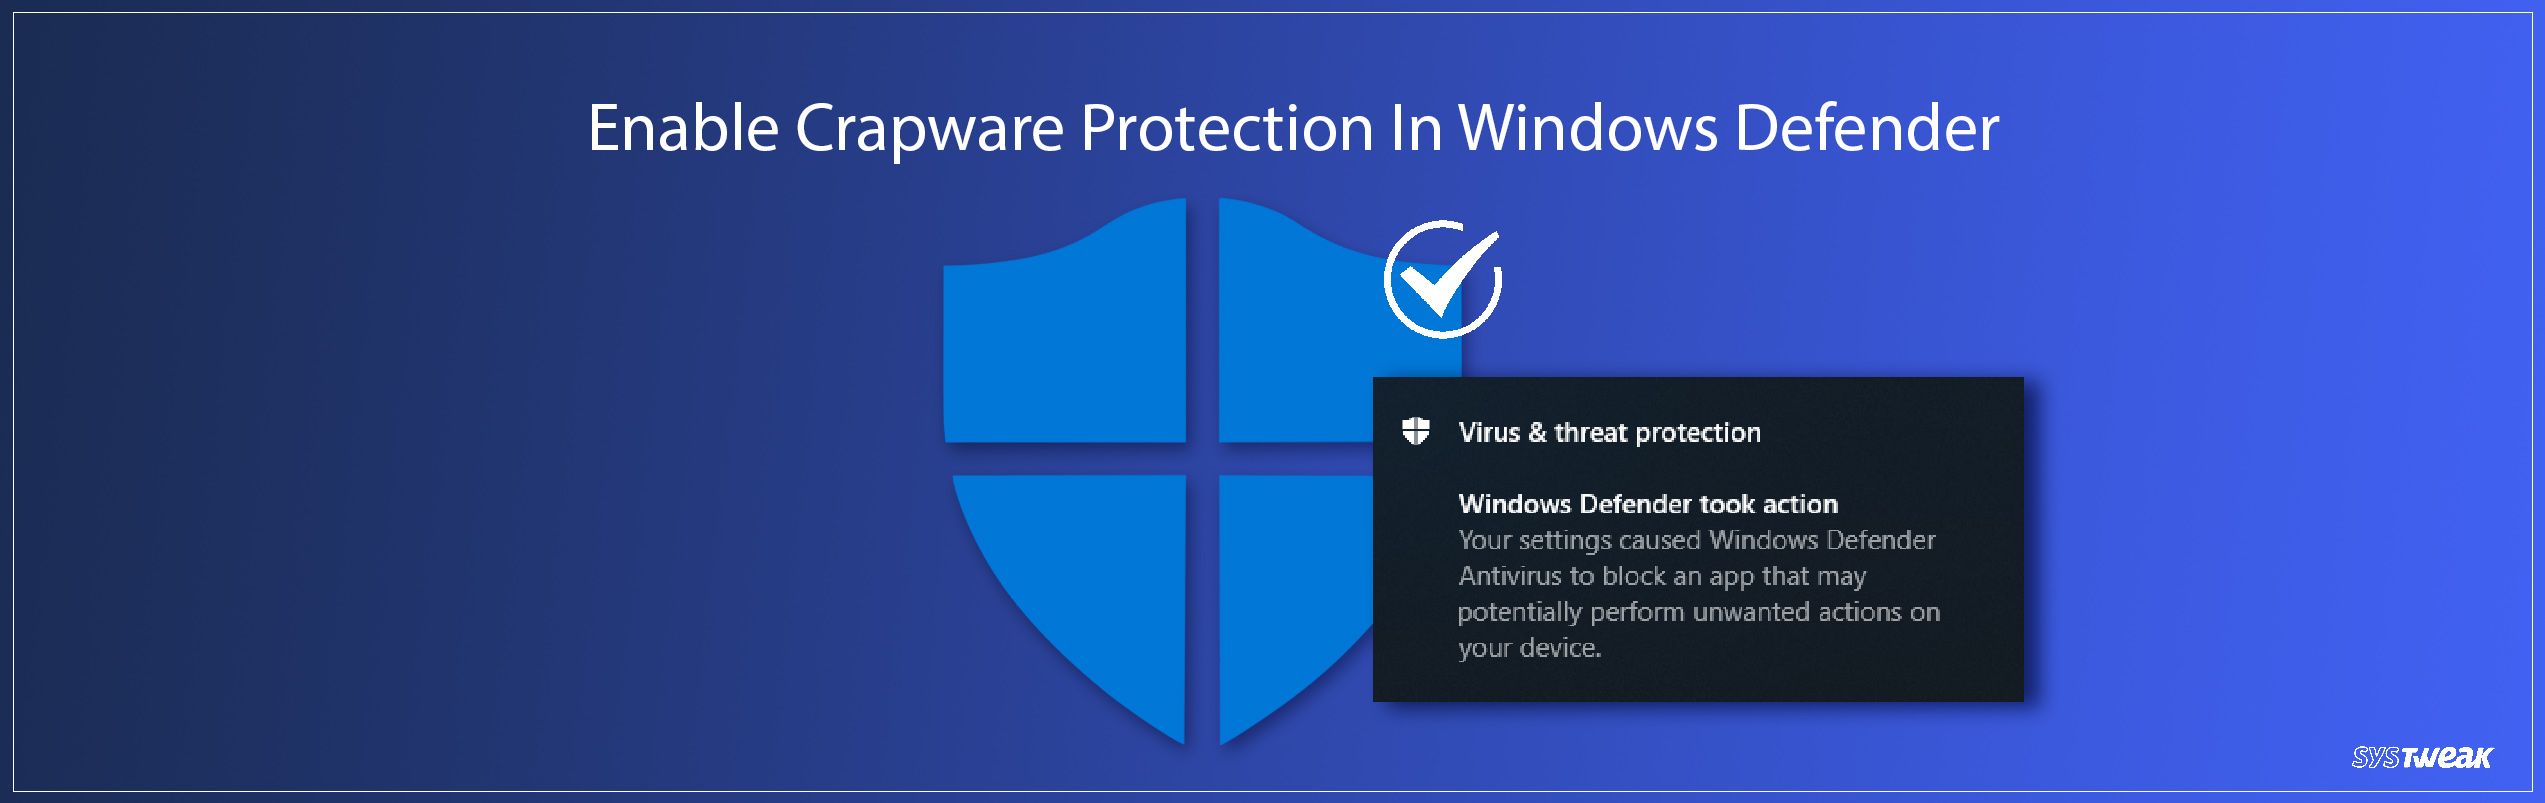 How to Enable Crapware Protection In Windows Defender